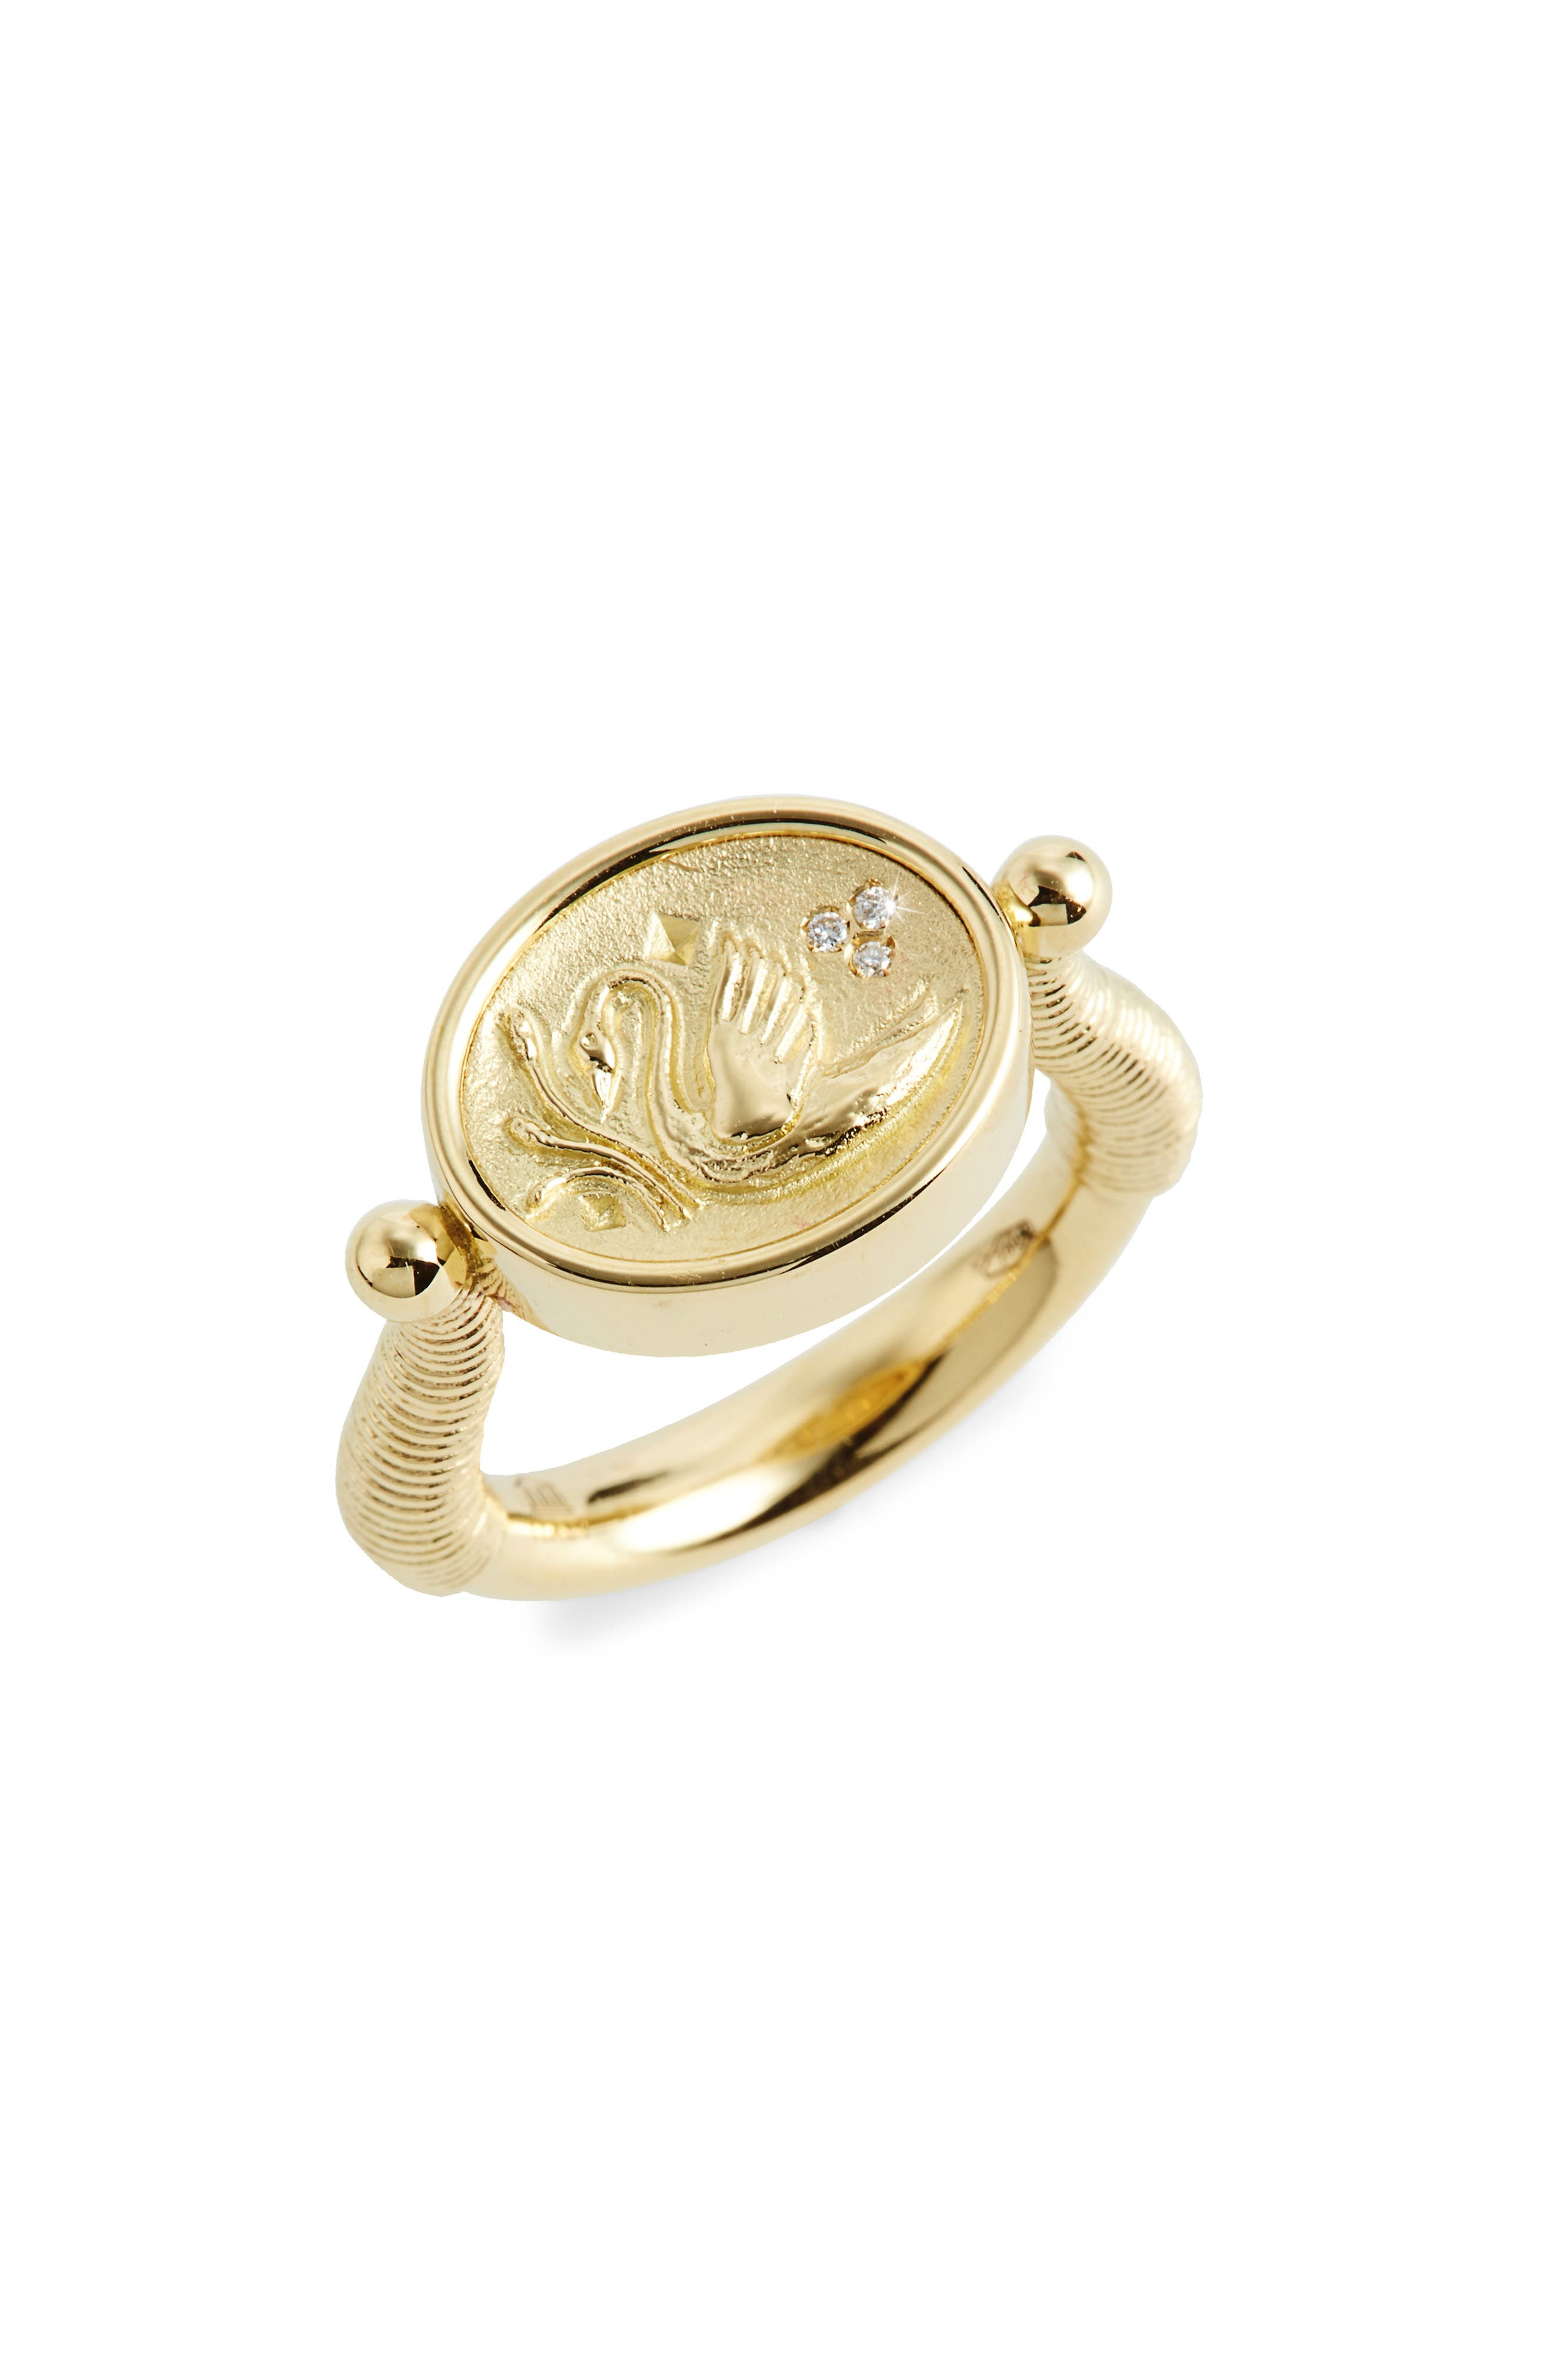 Temple St. Clair Object Trouvé Swan Coin Diamond Ring,                             Main thumbnail 1, color,